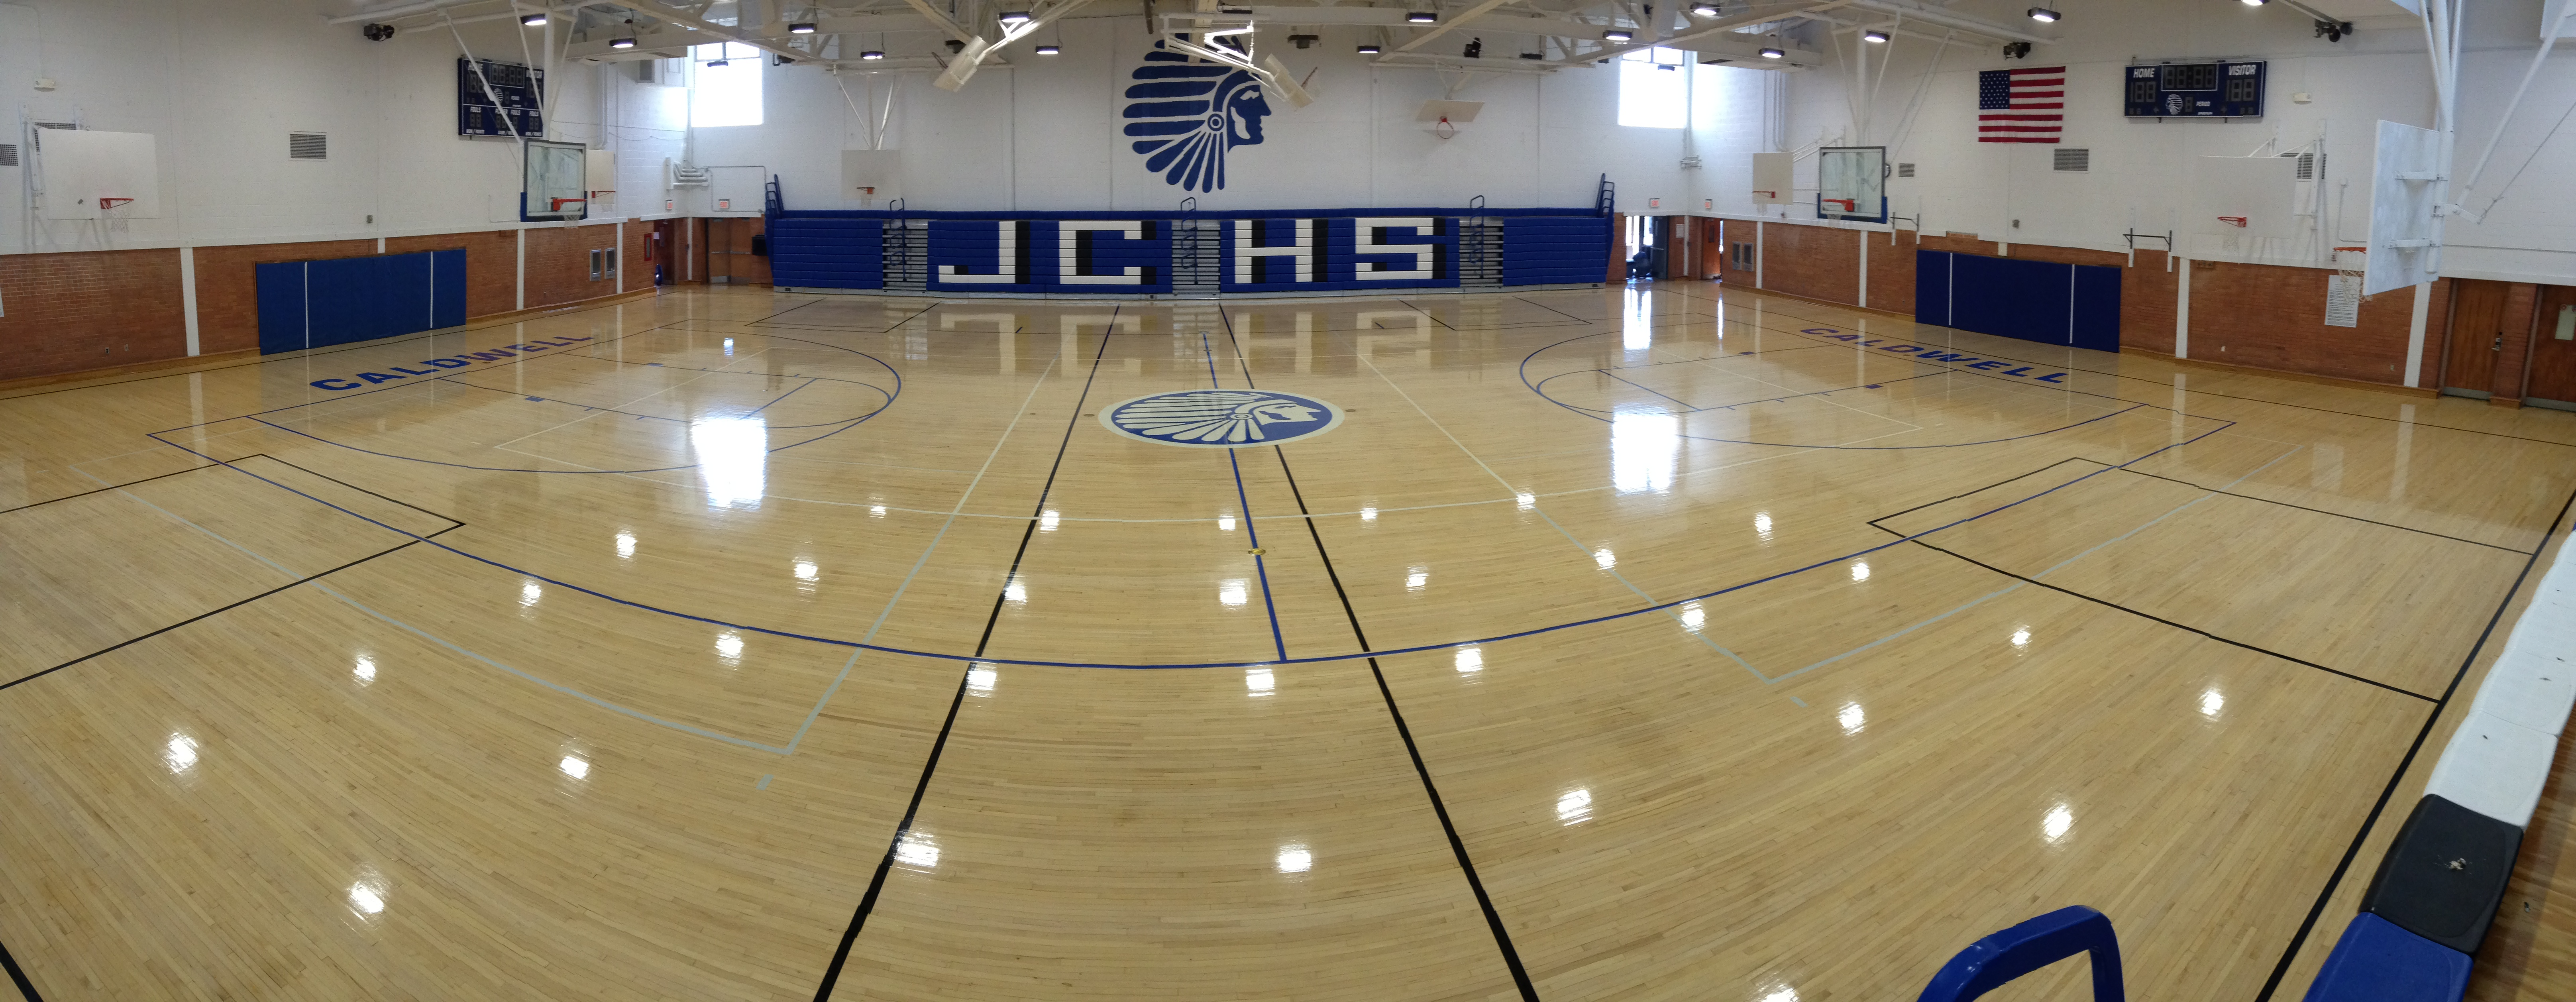 floor addition lapse high cooper graphics flooring gym lc school tuesday isd time lubbock